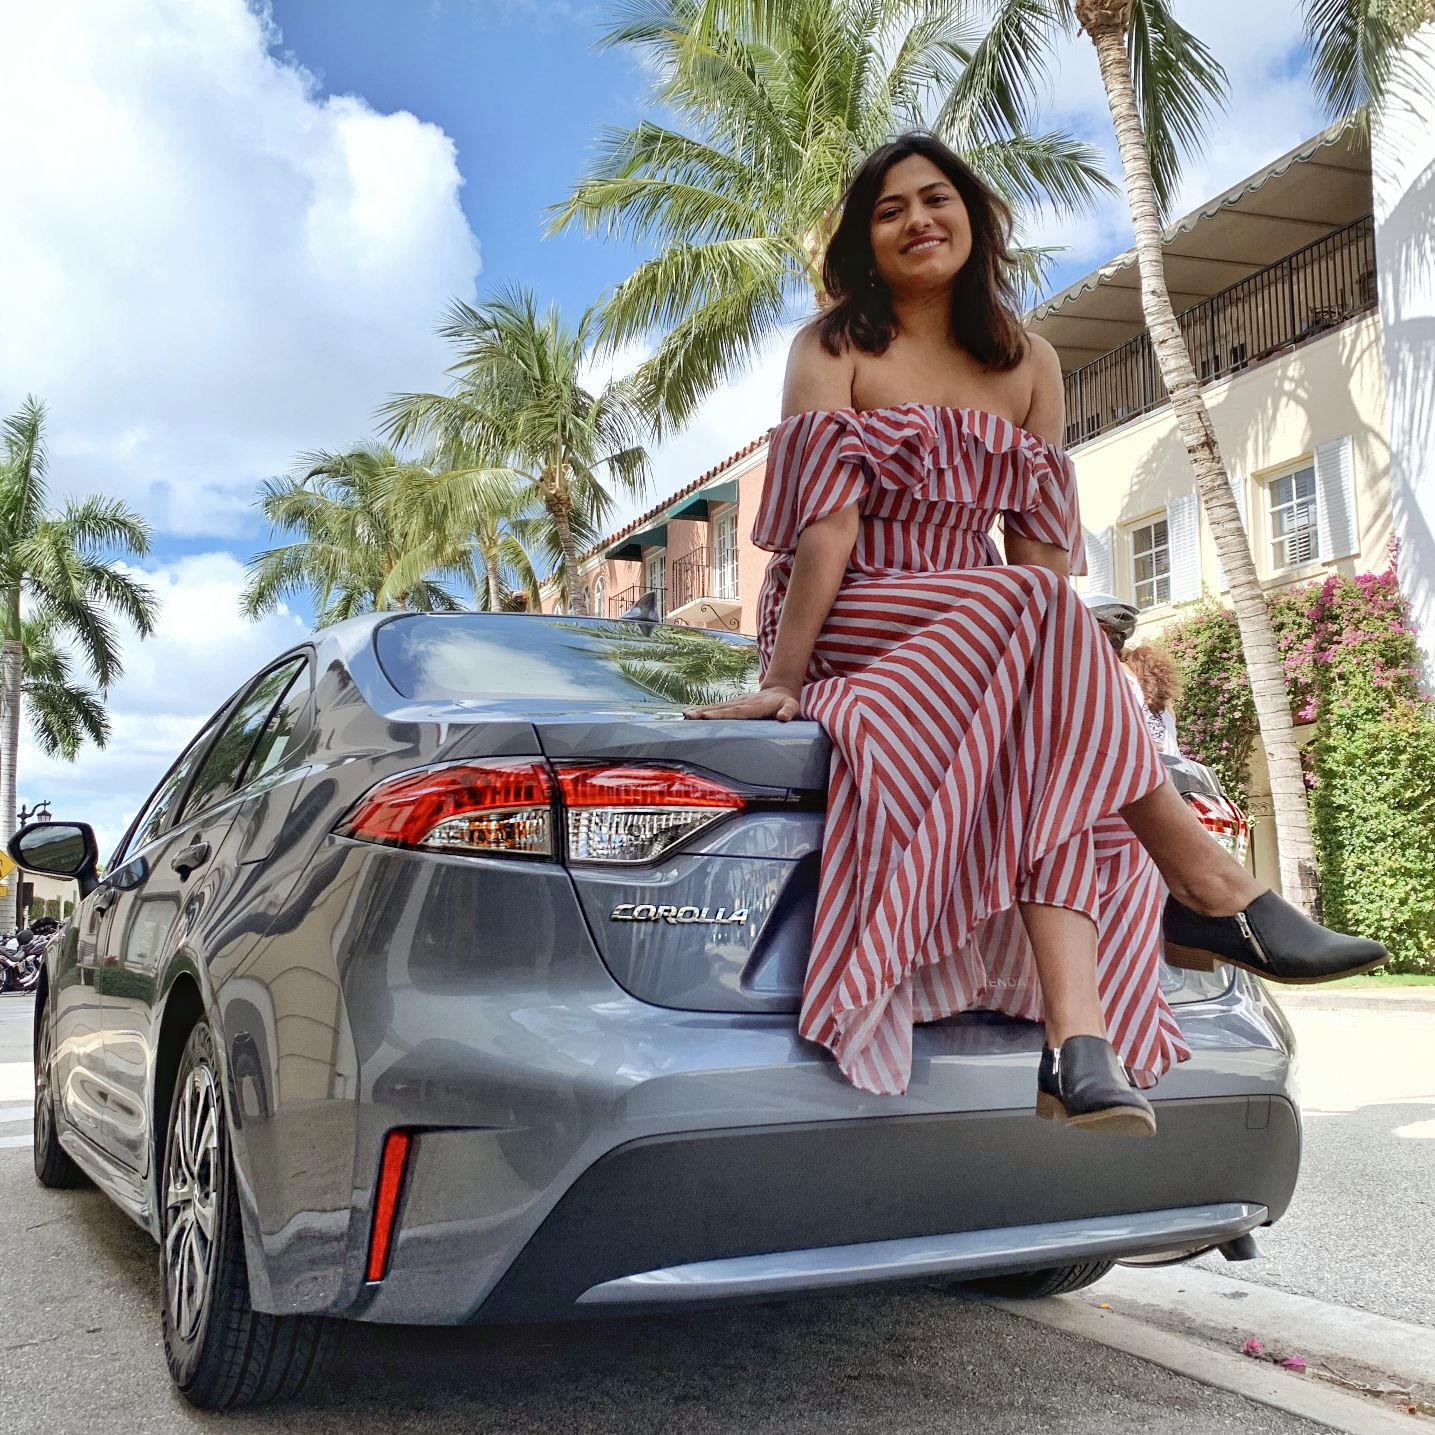 Miami Car Blogger Afroza Khan Reviews 2020 Toyota Corolla Hyrbid